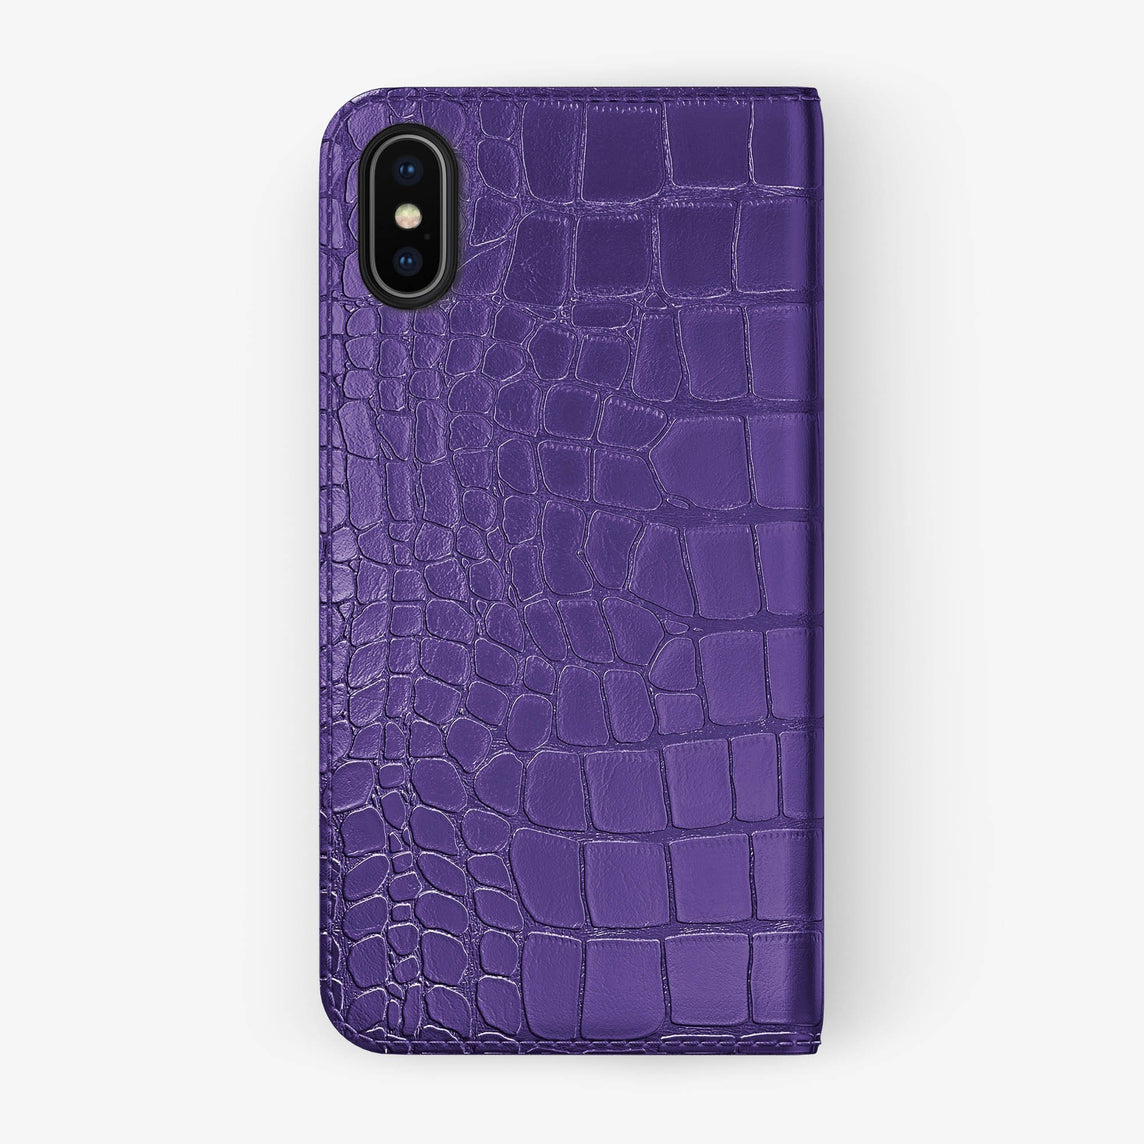 Purple Alligator iPhone Folio Case for iPhone X finishing black - Hadoro Luxury Cases